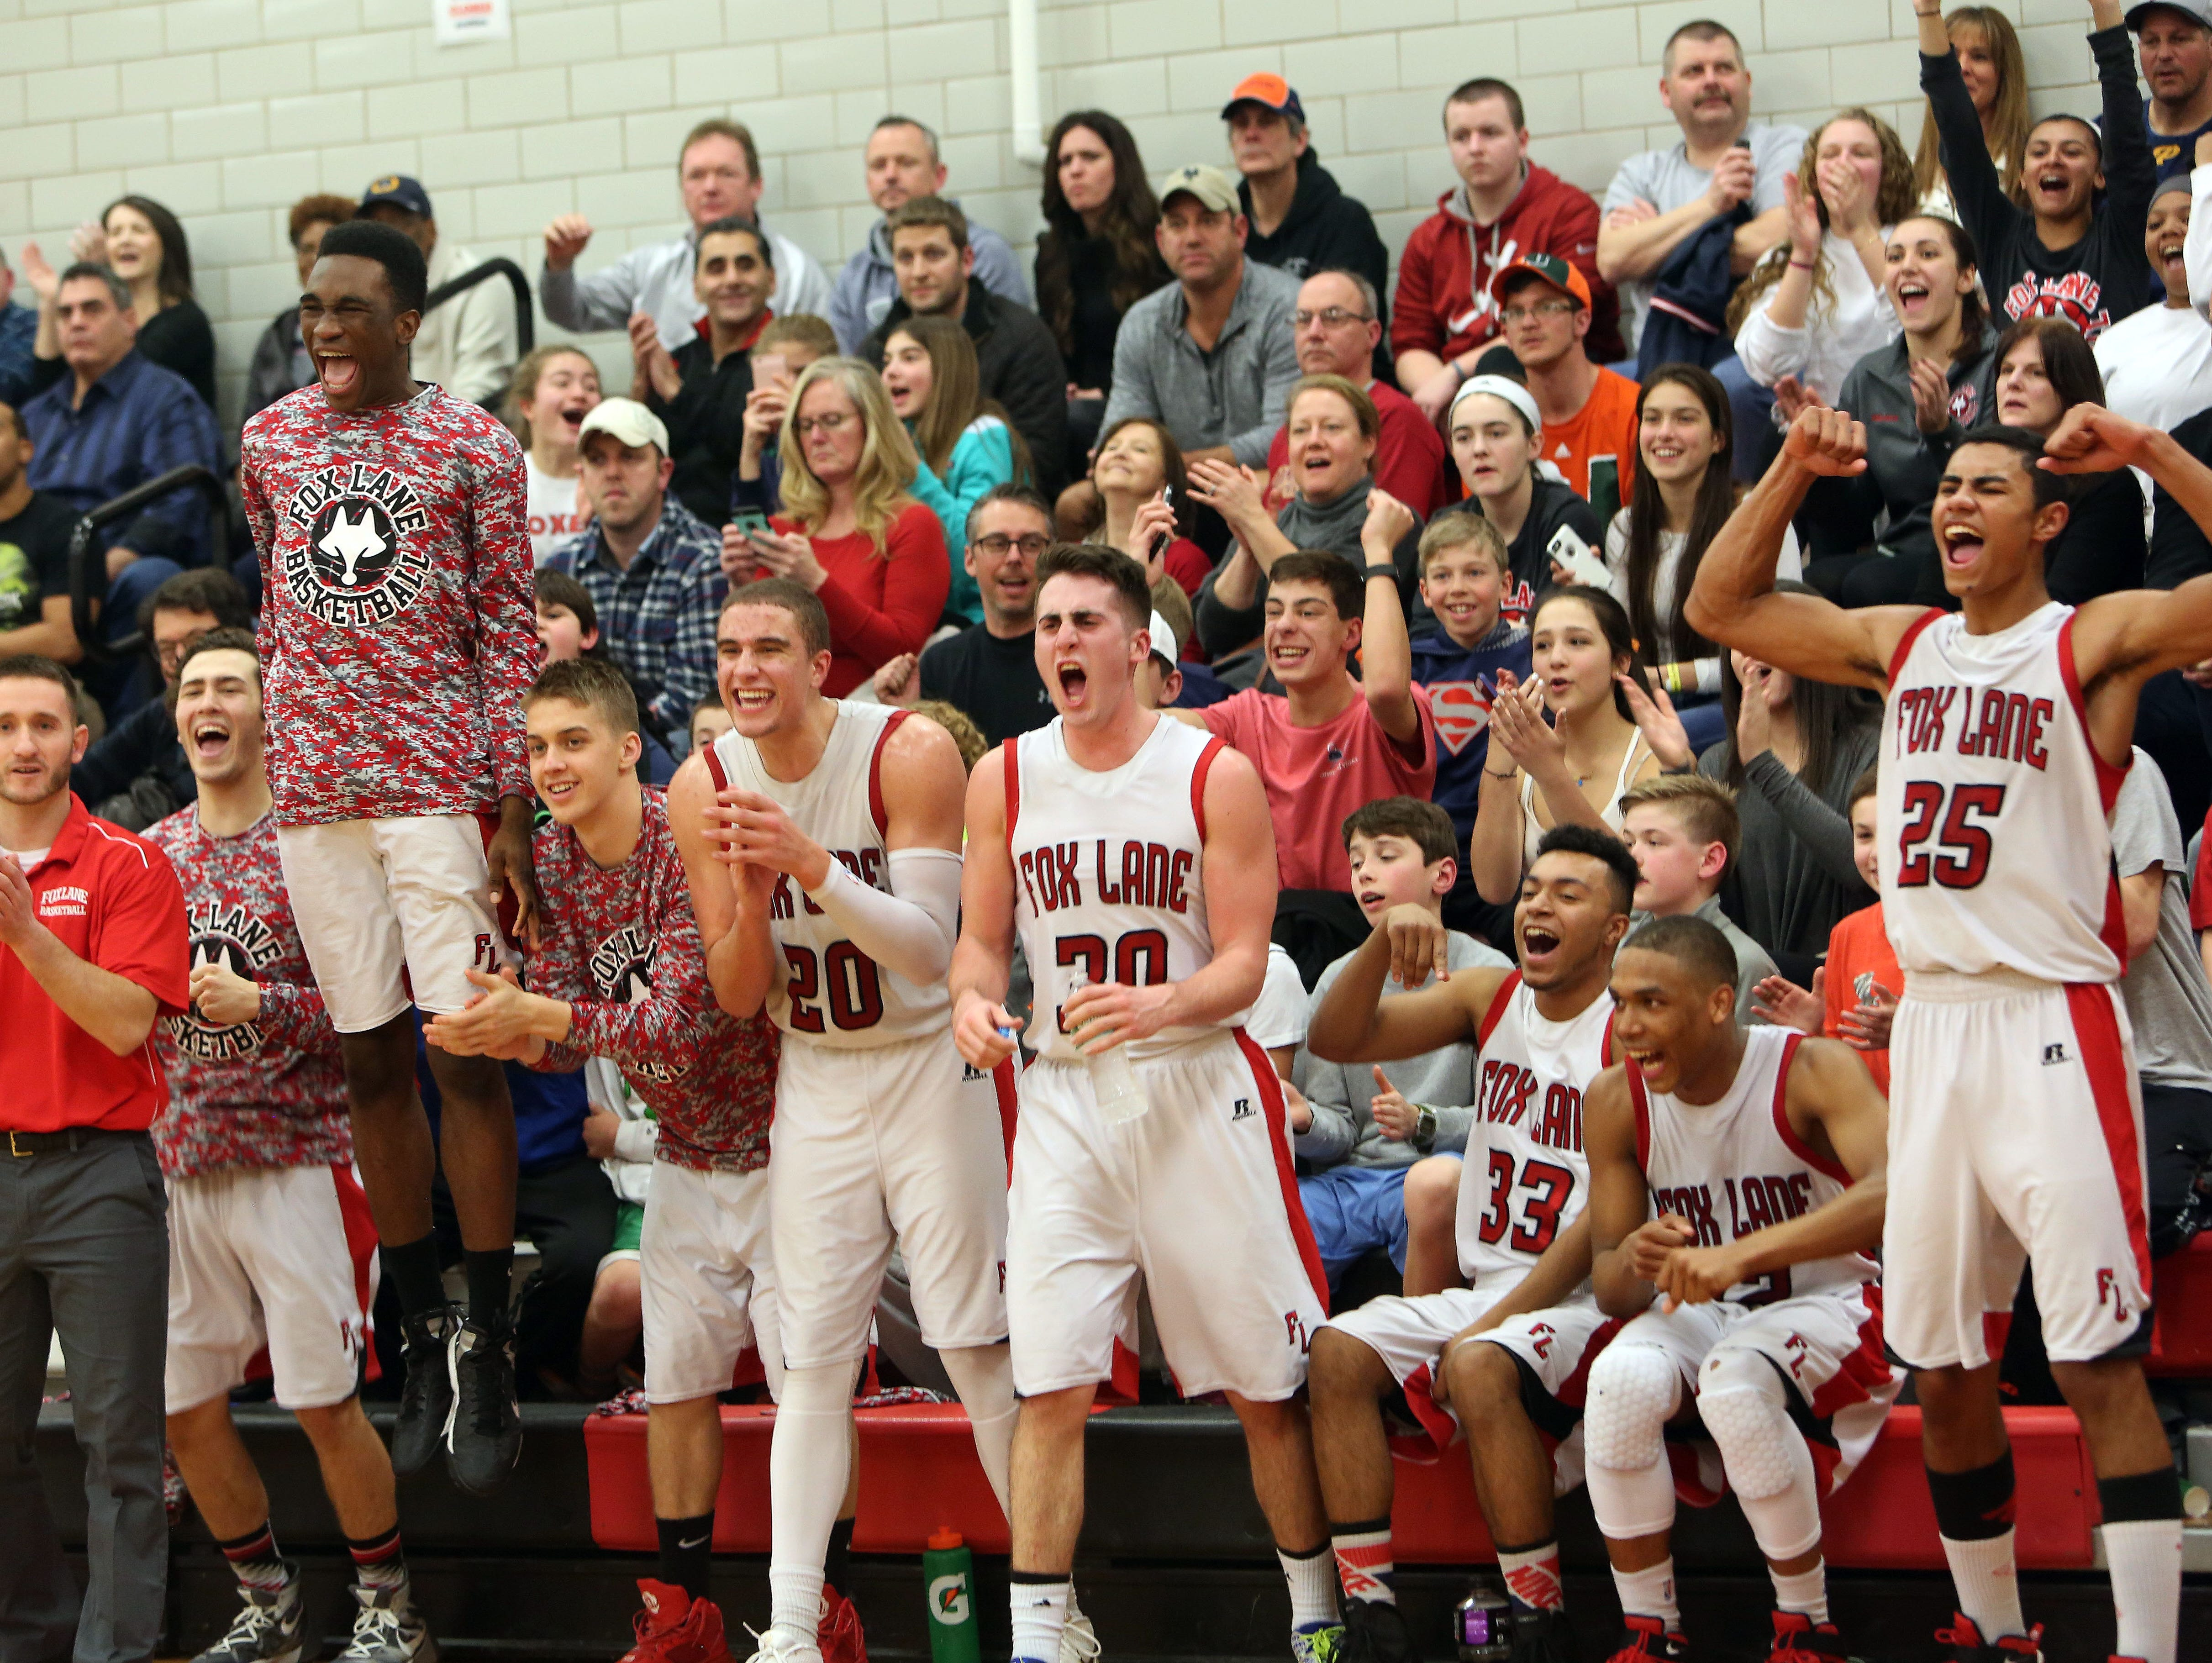 Fox Lane players celebrate their 78-45 victory over New Rochelle in the Class AA quarterfinals at Fox Lane High School in Bedford Feb. 20, 2016.